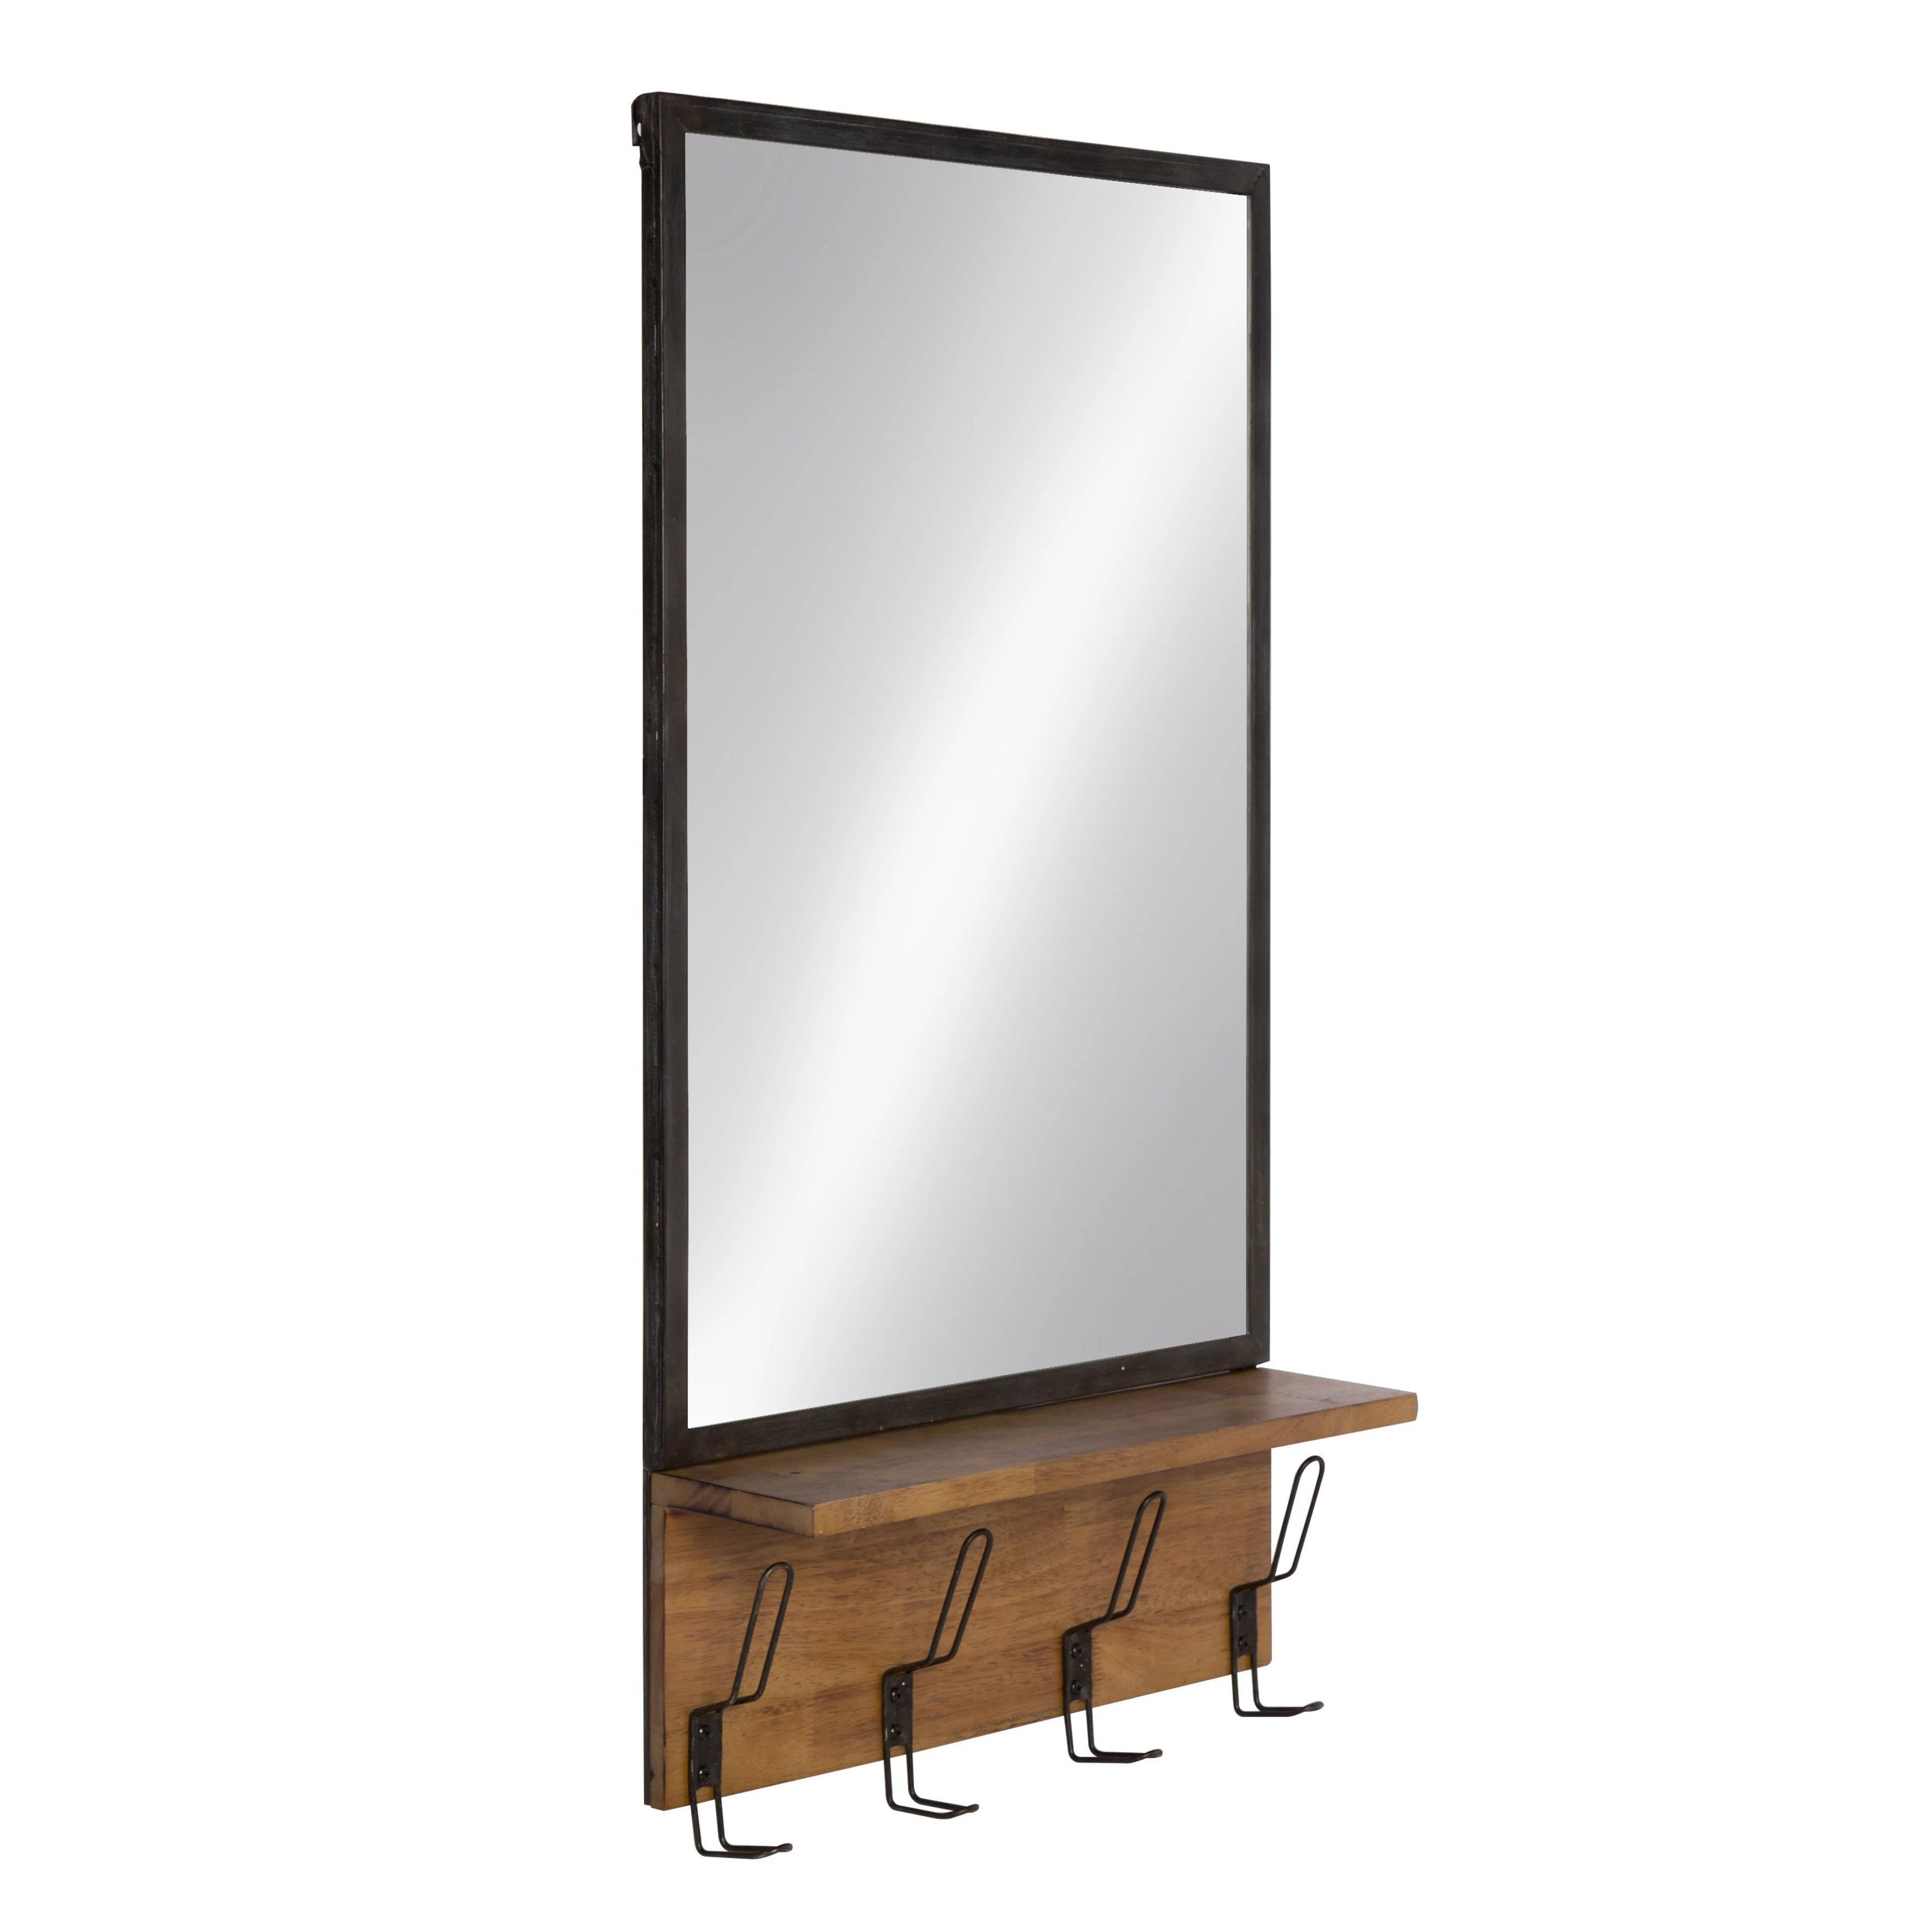 Metal Wall Mirror With Shelf Kate And Laurel Coburn Distressed Metal Mirror With Wood